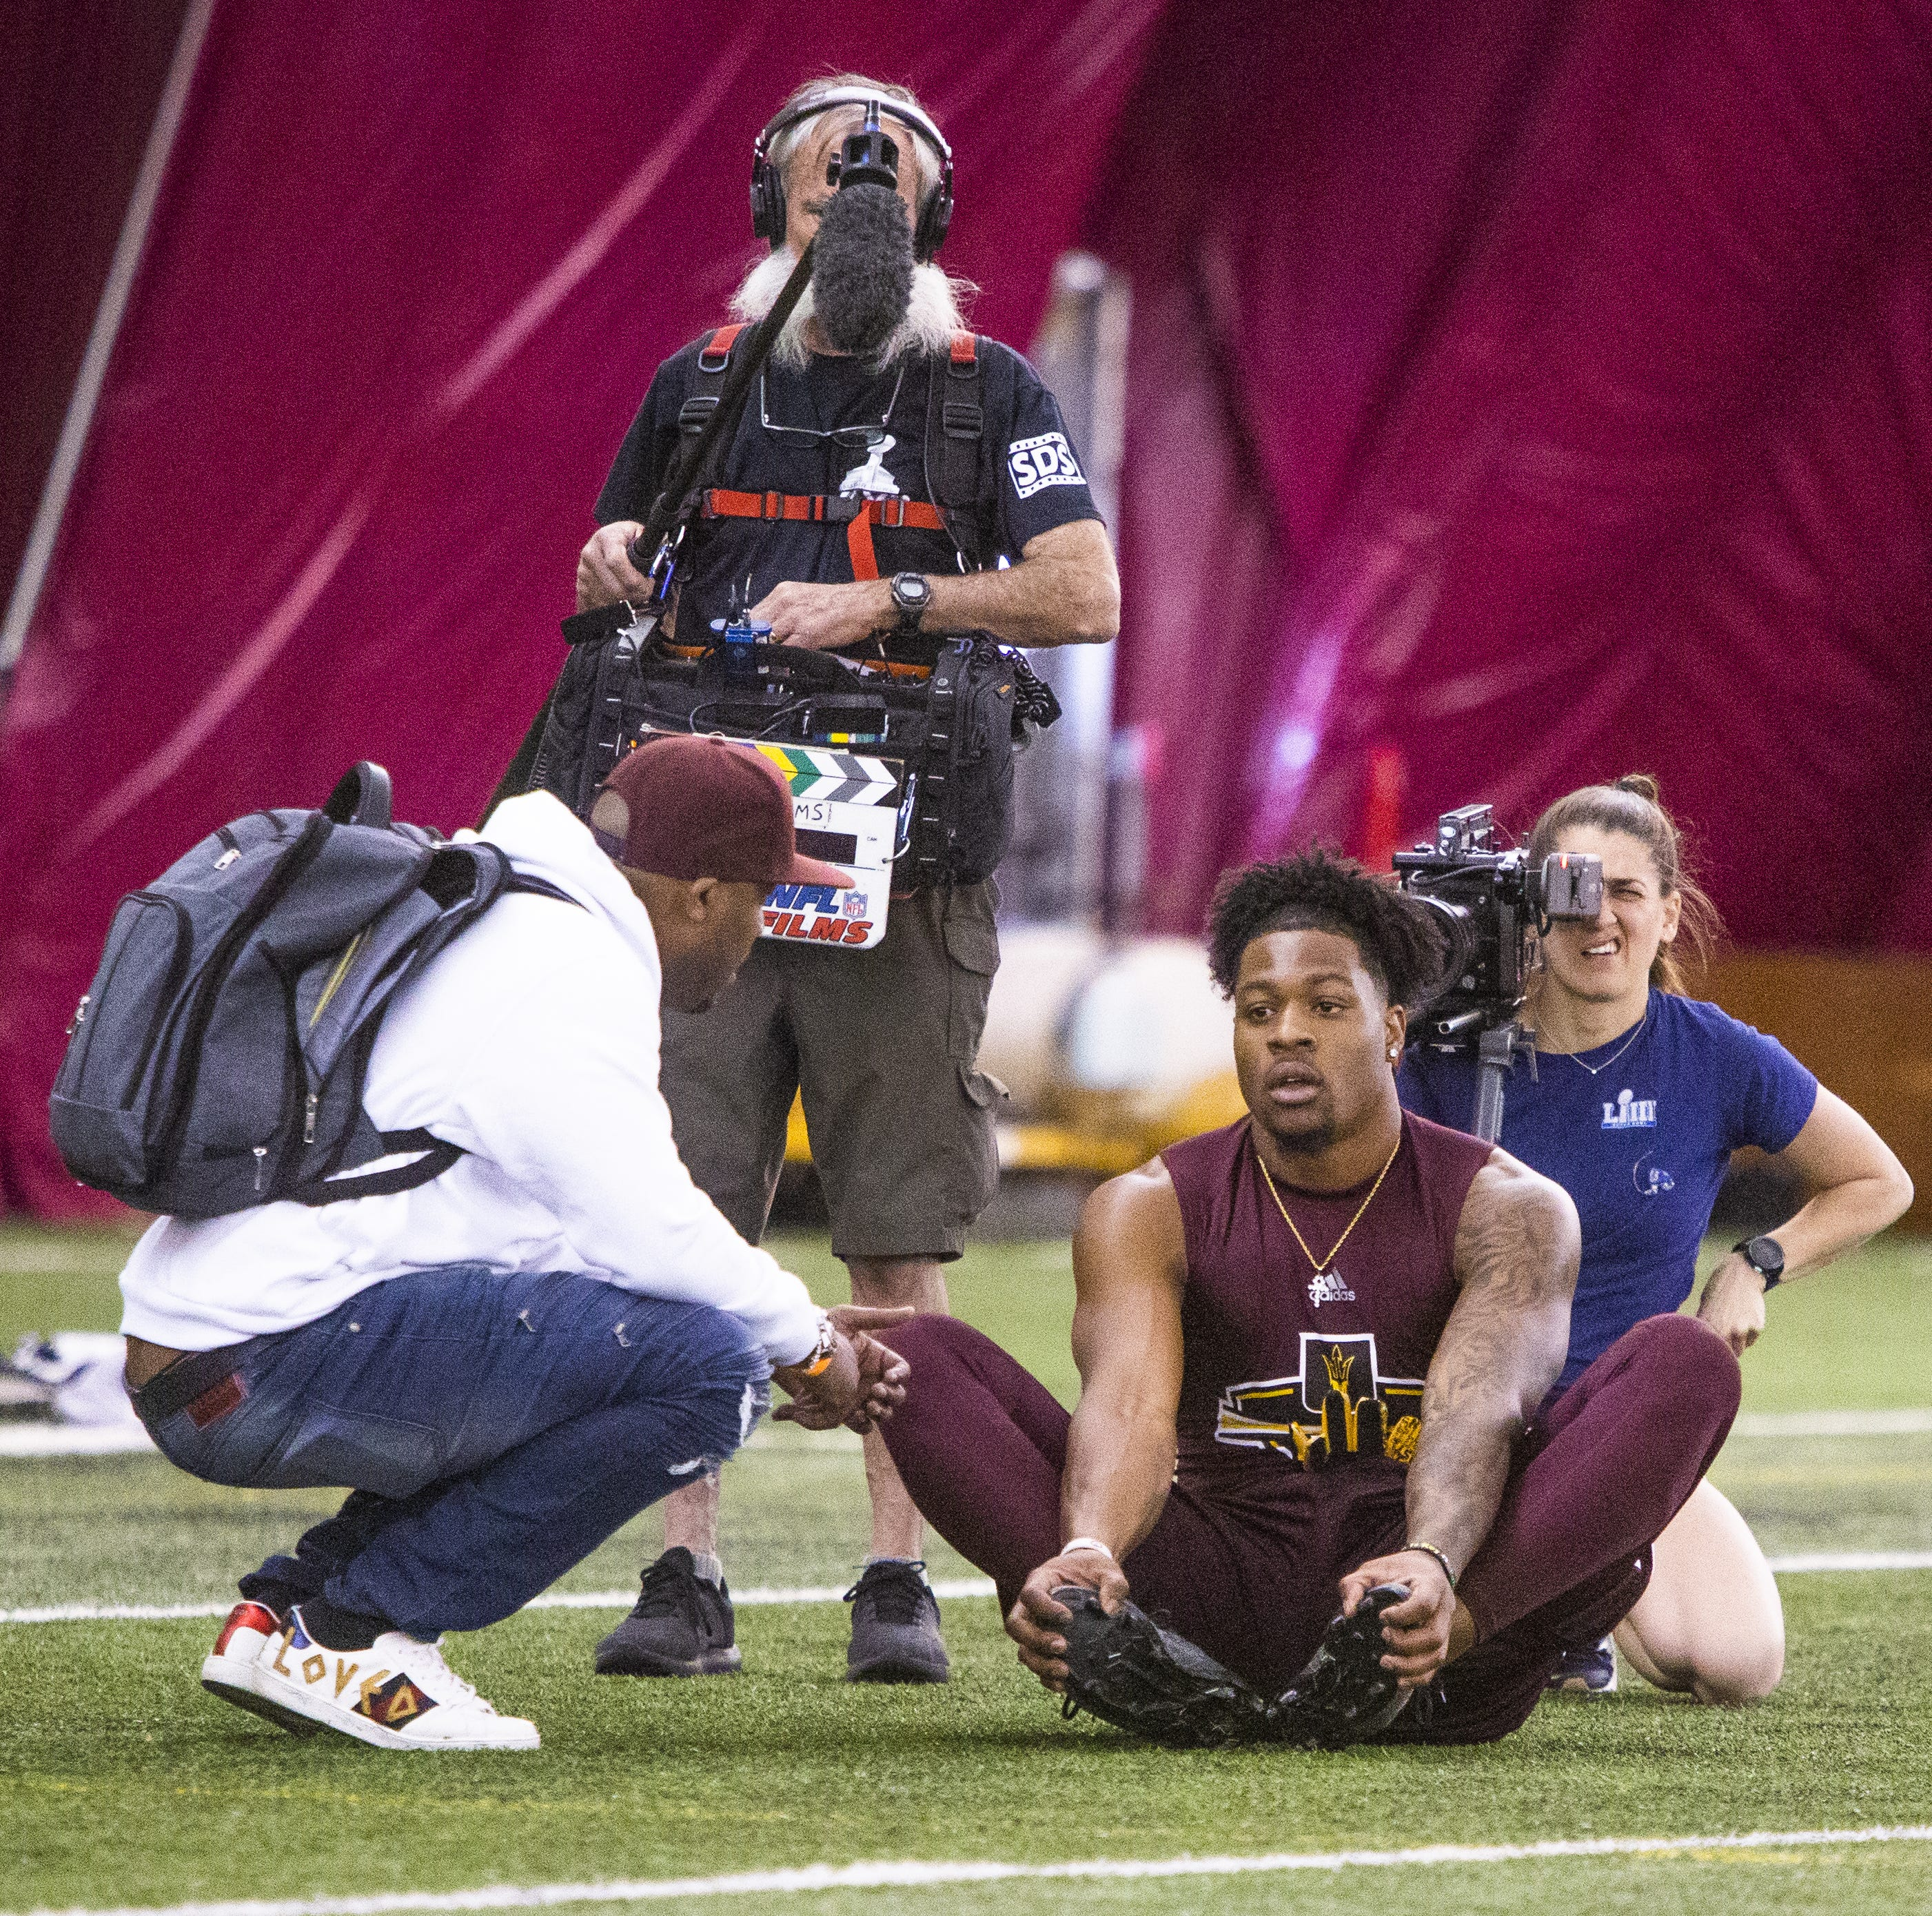 NFL draft: N'Keal Harry to give Arizona Cardinals only private workout, report says